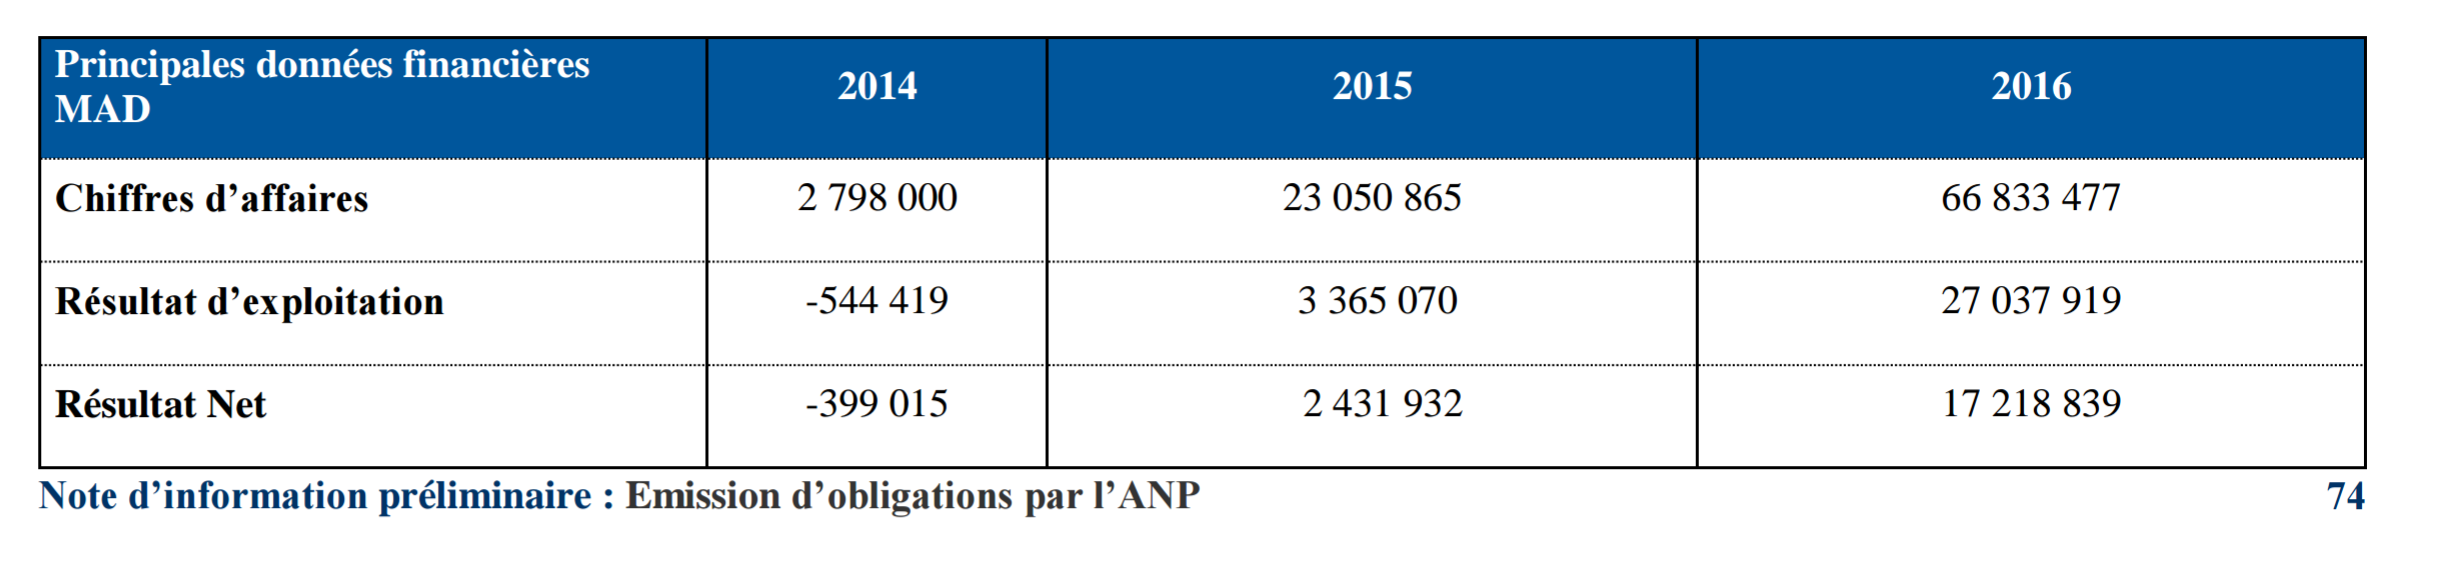 Resultats financiers PORTNET SA